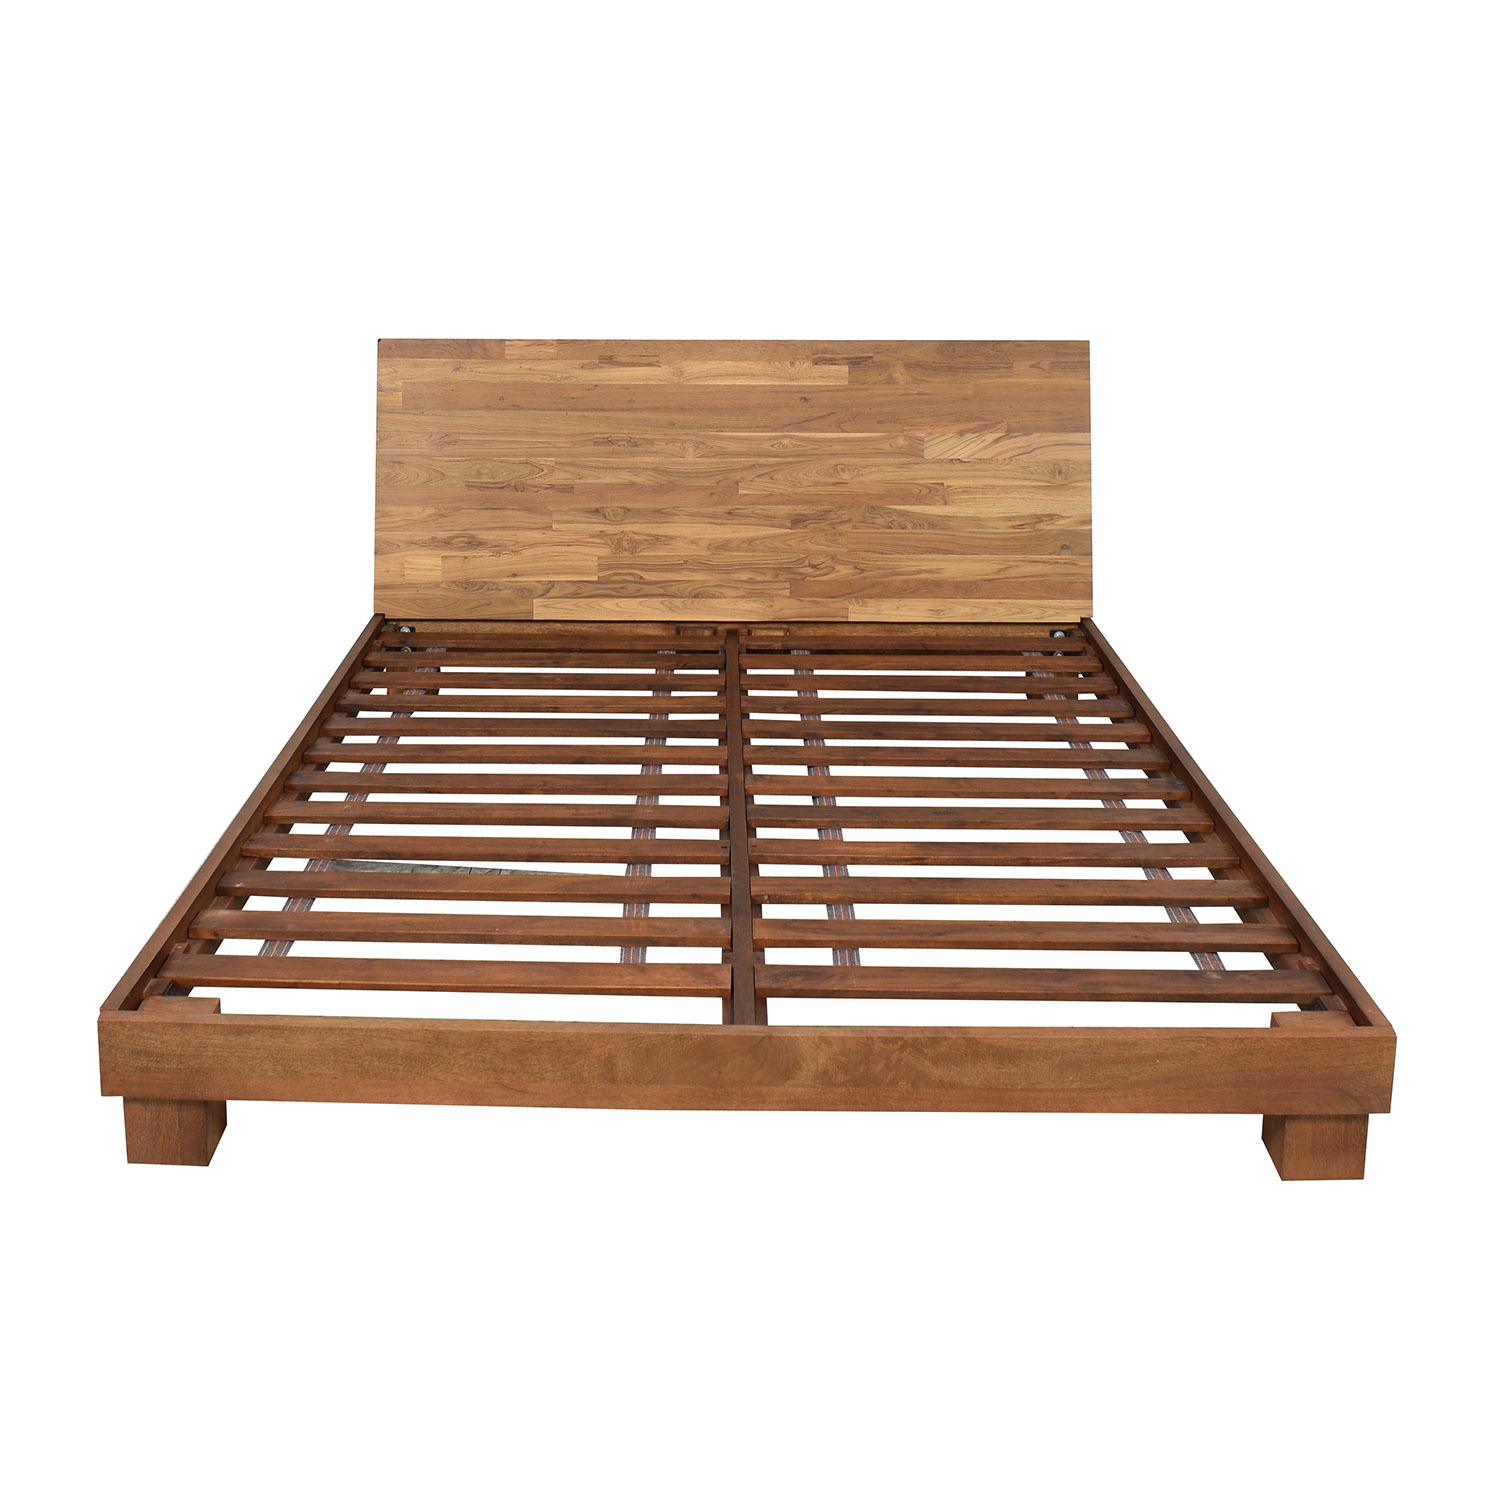 CB2 Dondra Queen Bed / Bed Frames